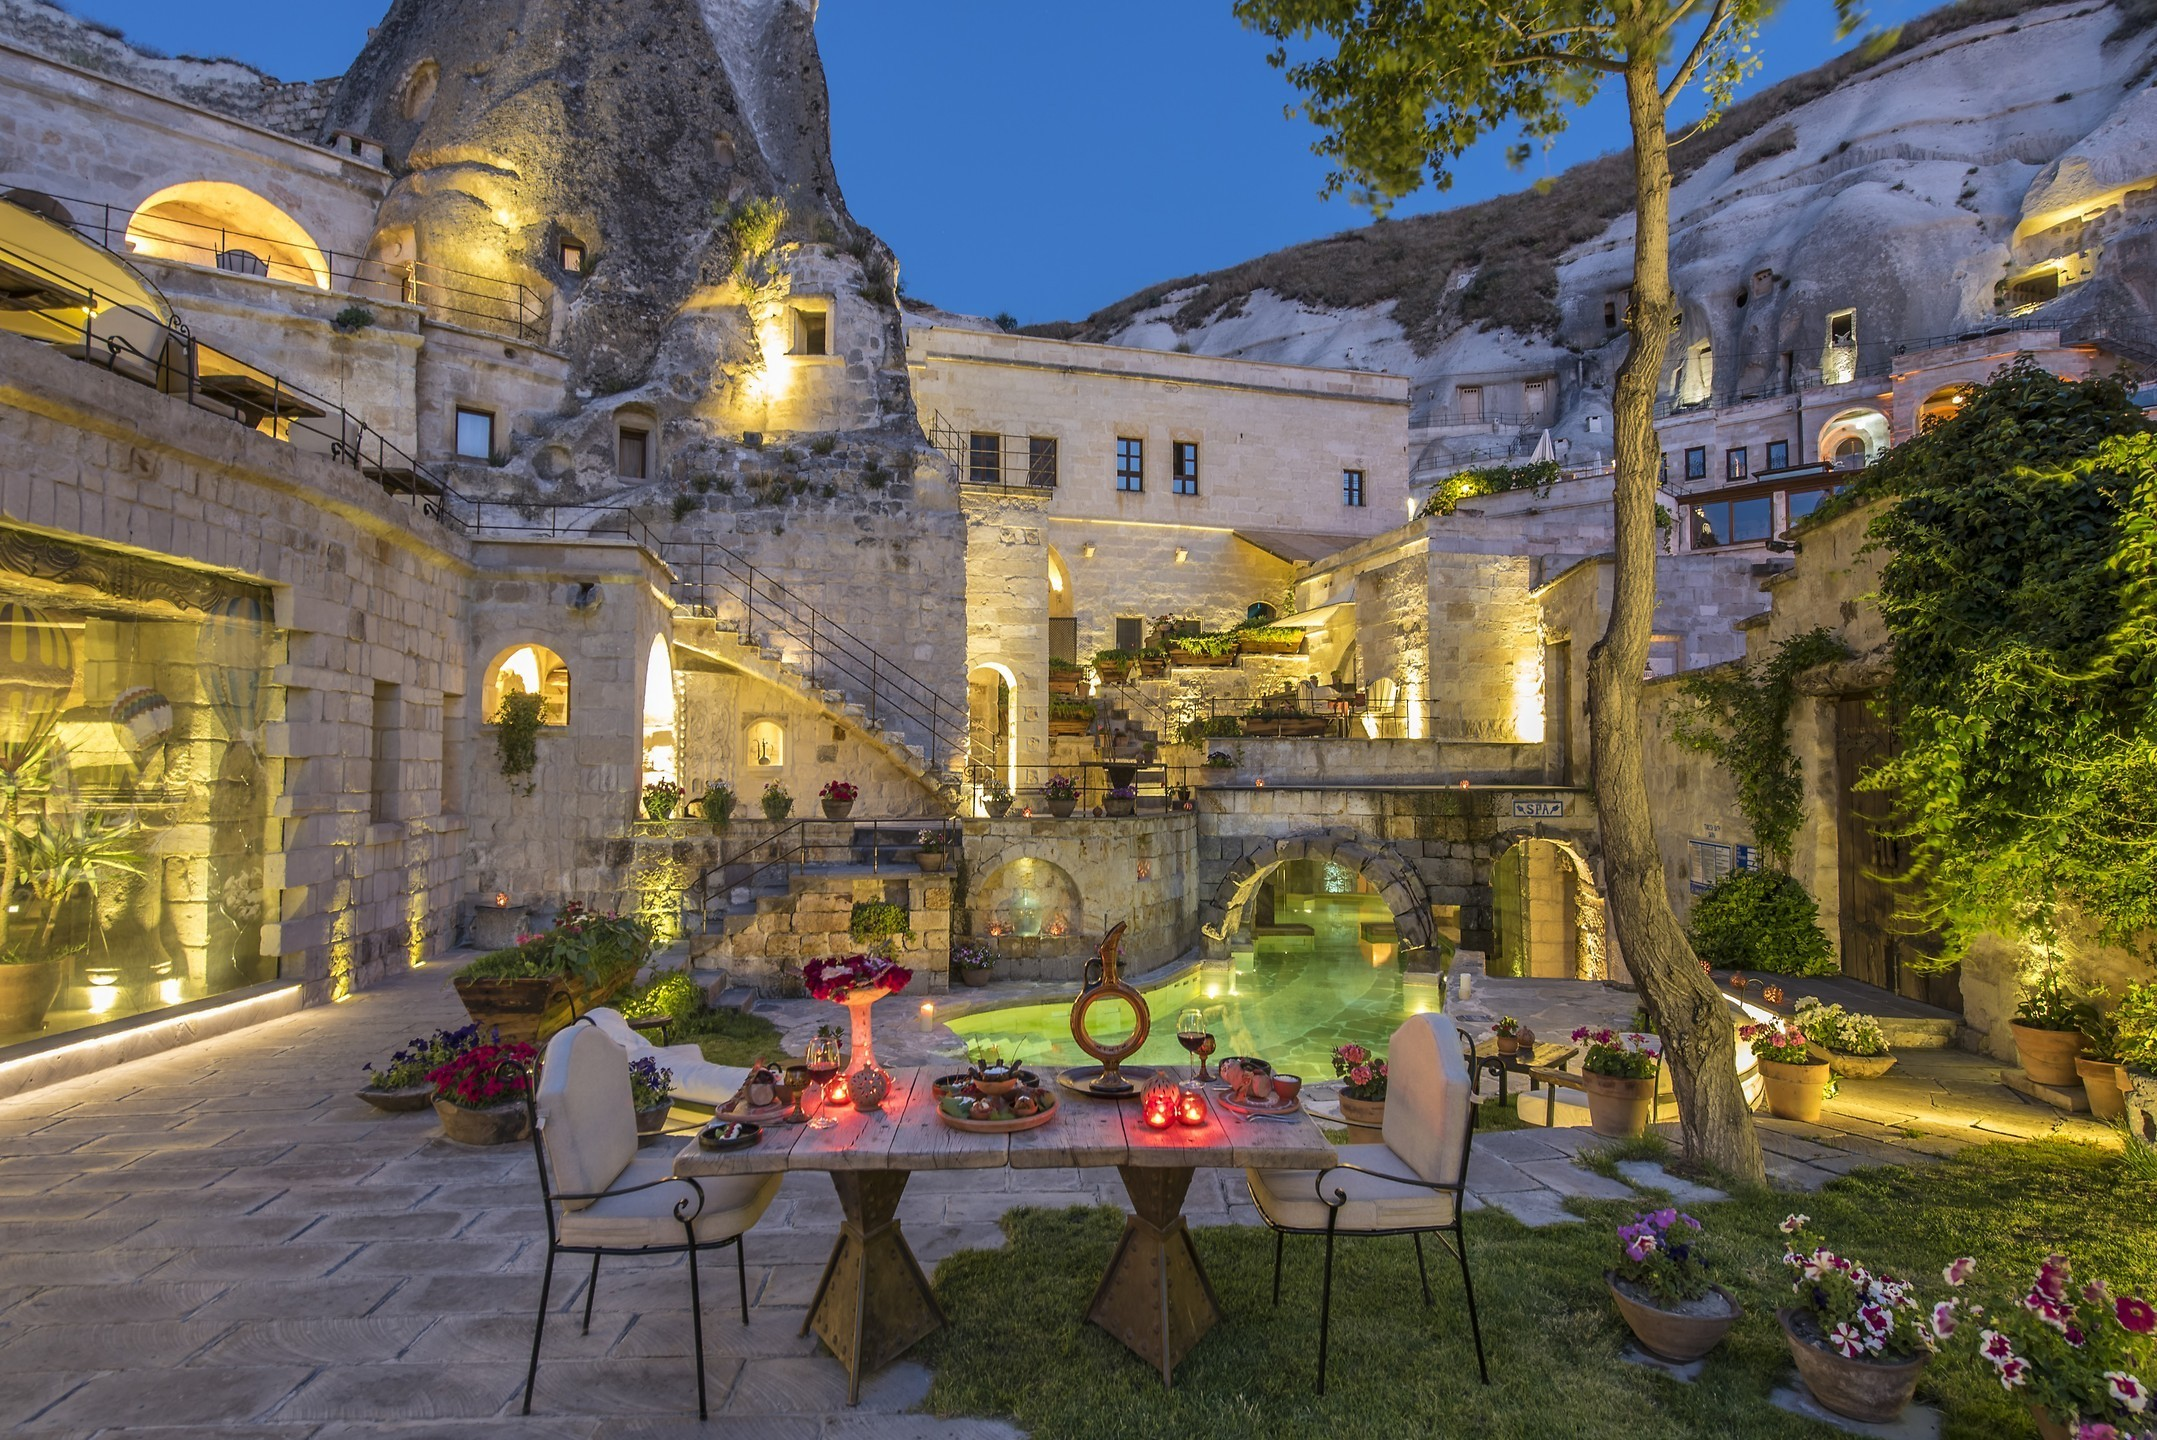 Anatolian-Houses-Cave-Hotel-Genel-212912